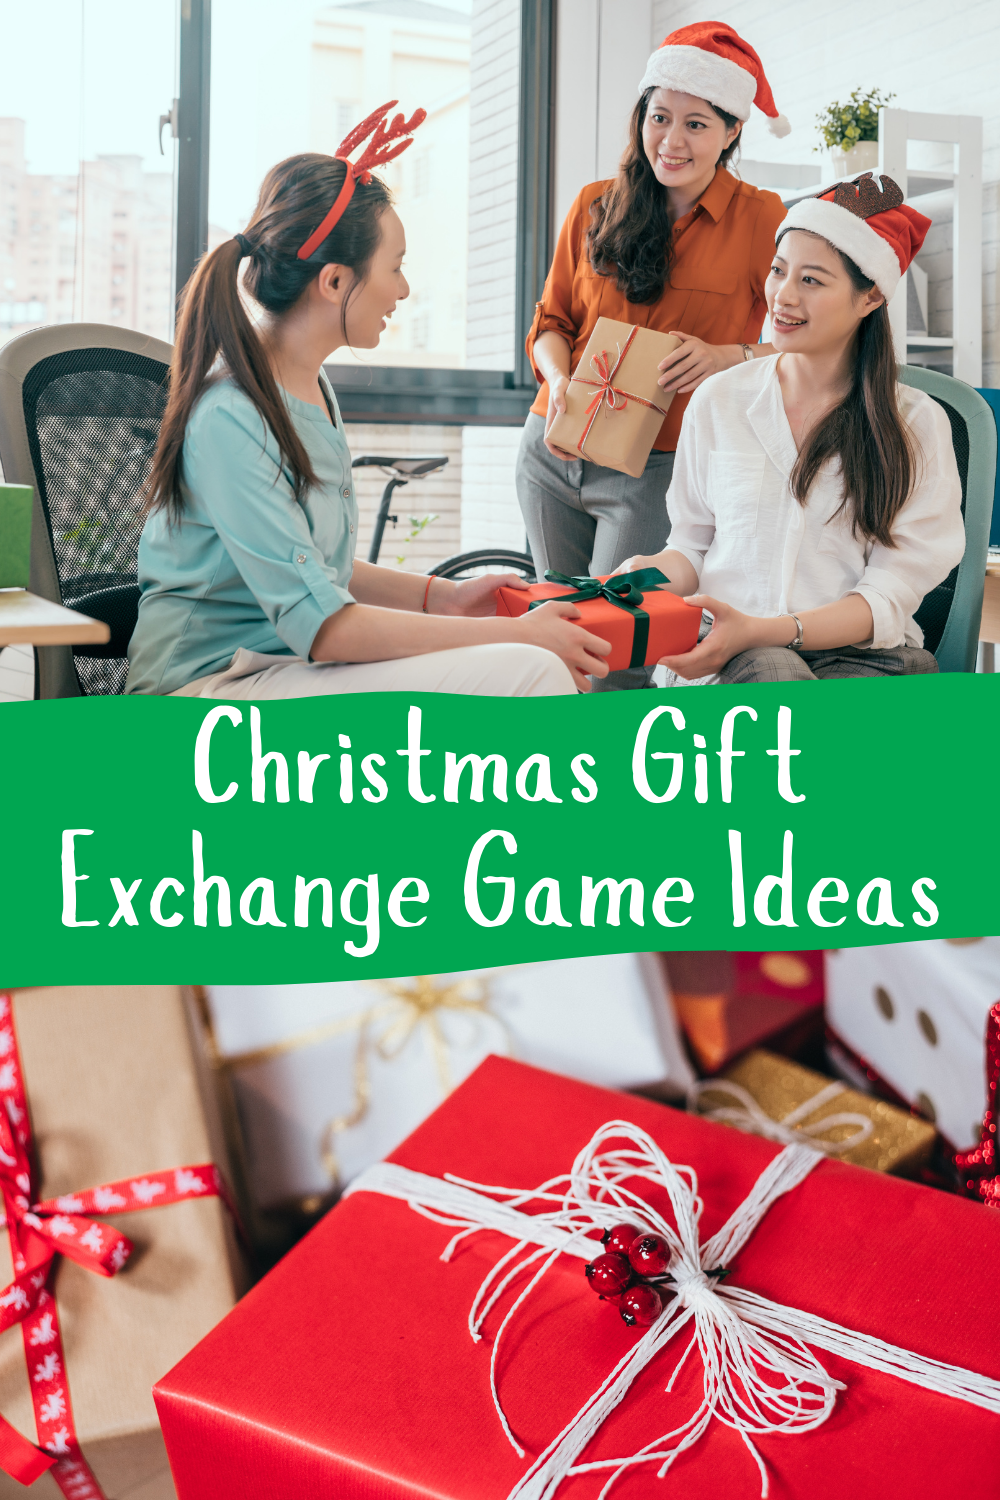 Office Christmas Party Games To Play For Fun